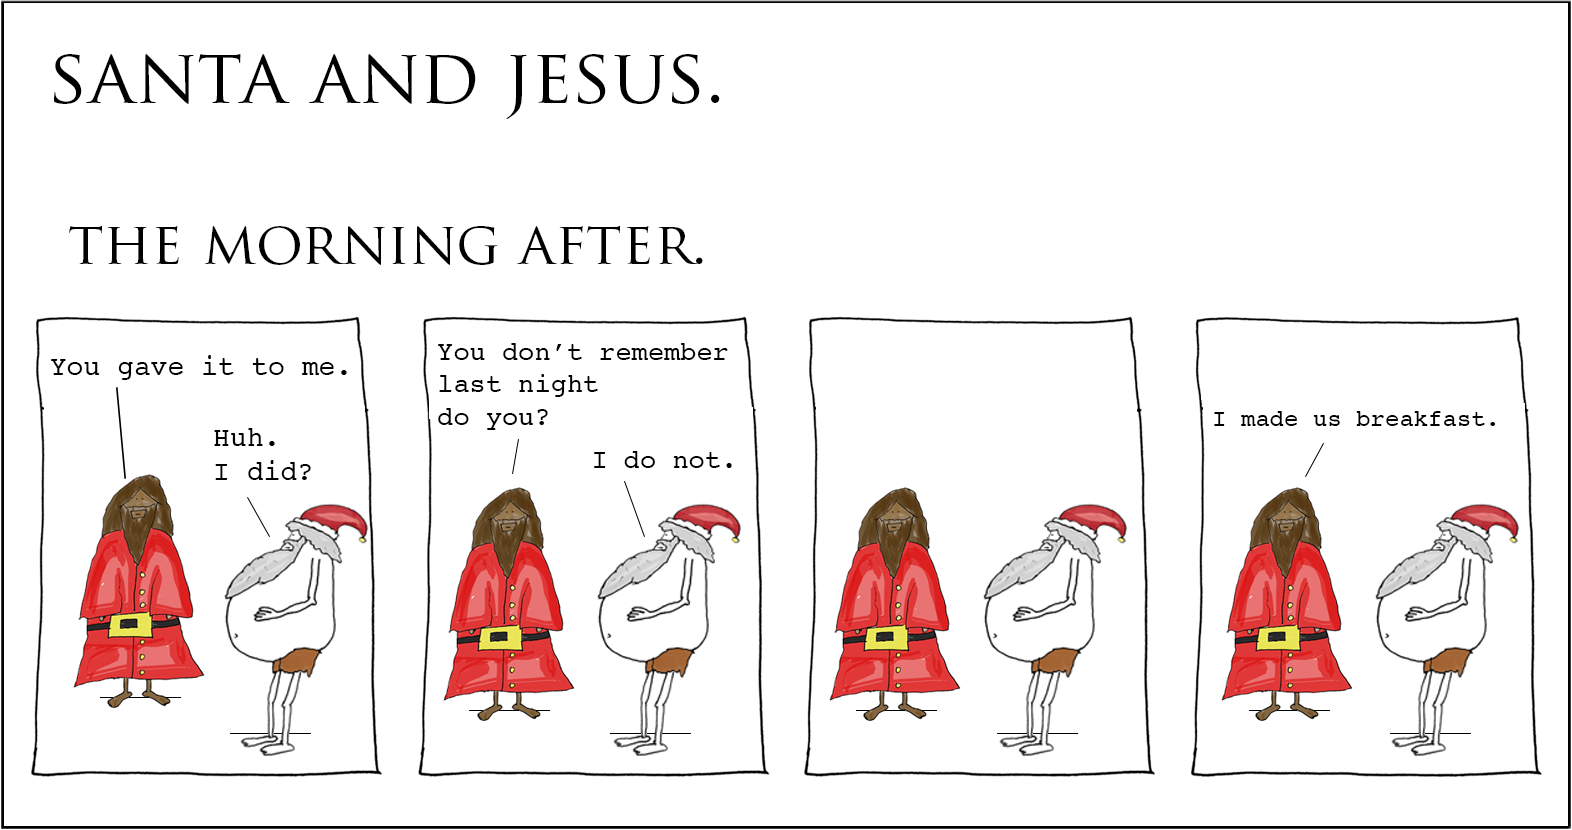 Santa and Jesus - The Morning After.